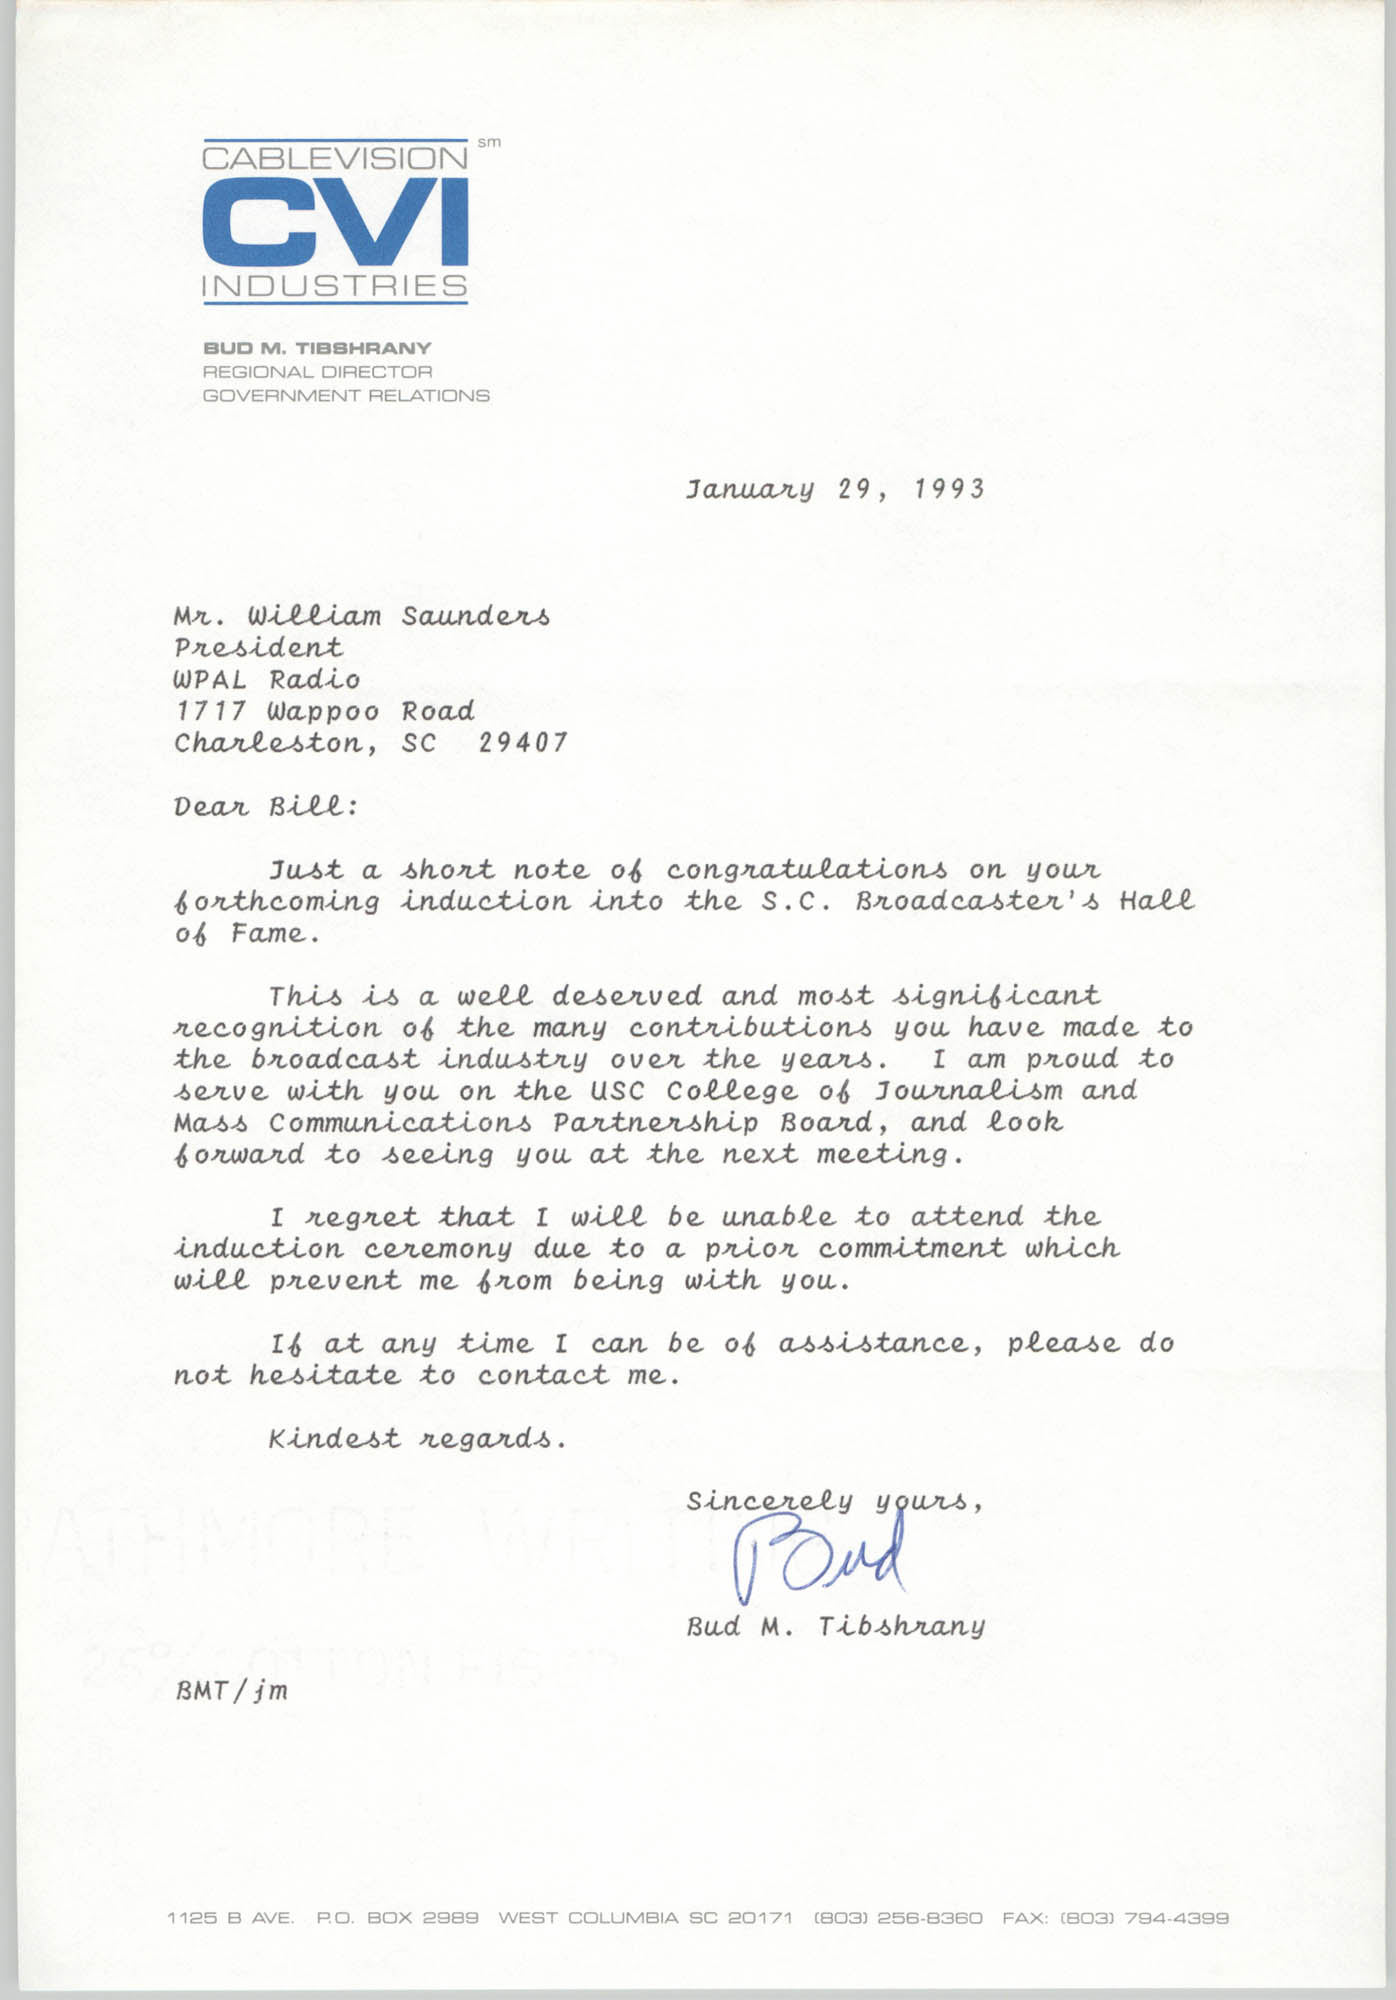 Letter from Bud M. Tibshrany to William Saunders, January 29, 1993